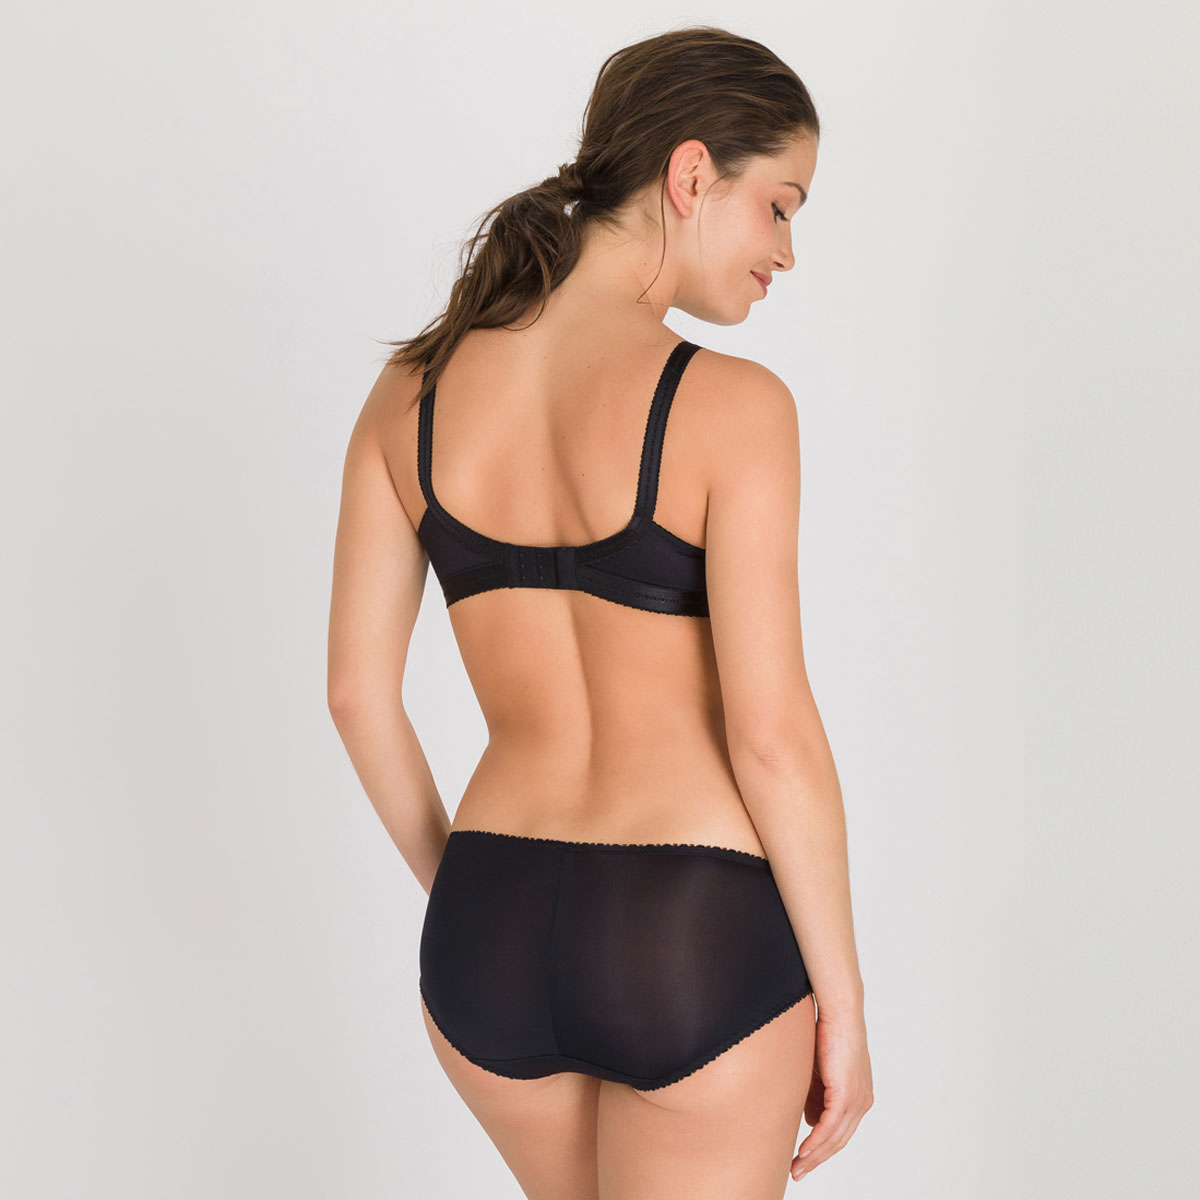 Non-wired Bra in Black – Classic Lace Support-PLAYTEX